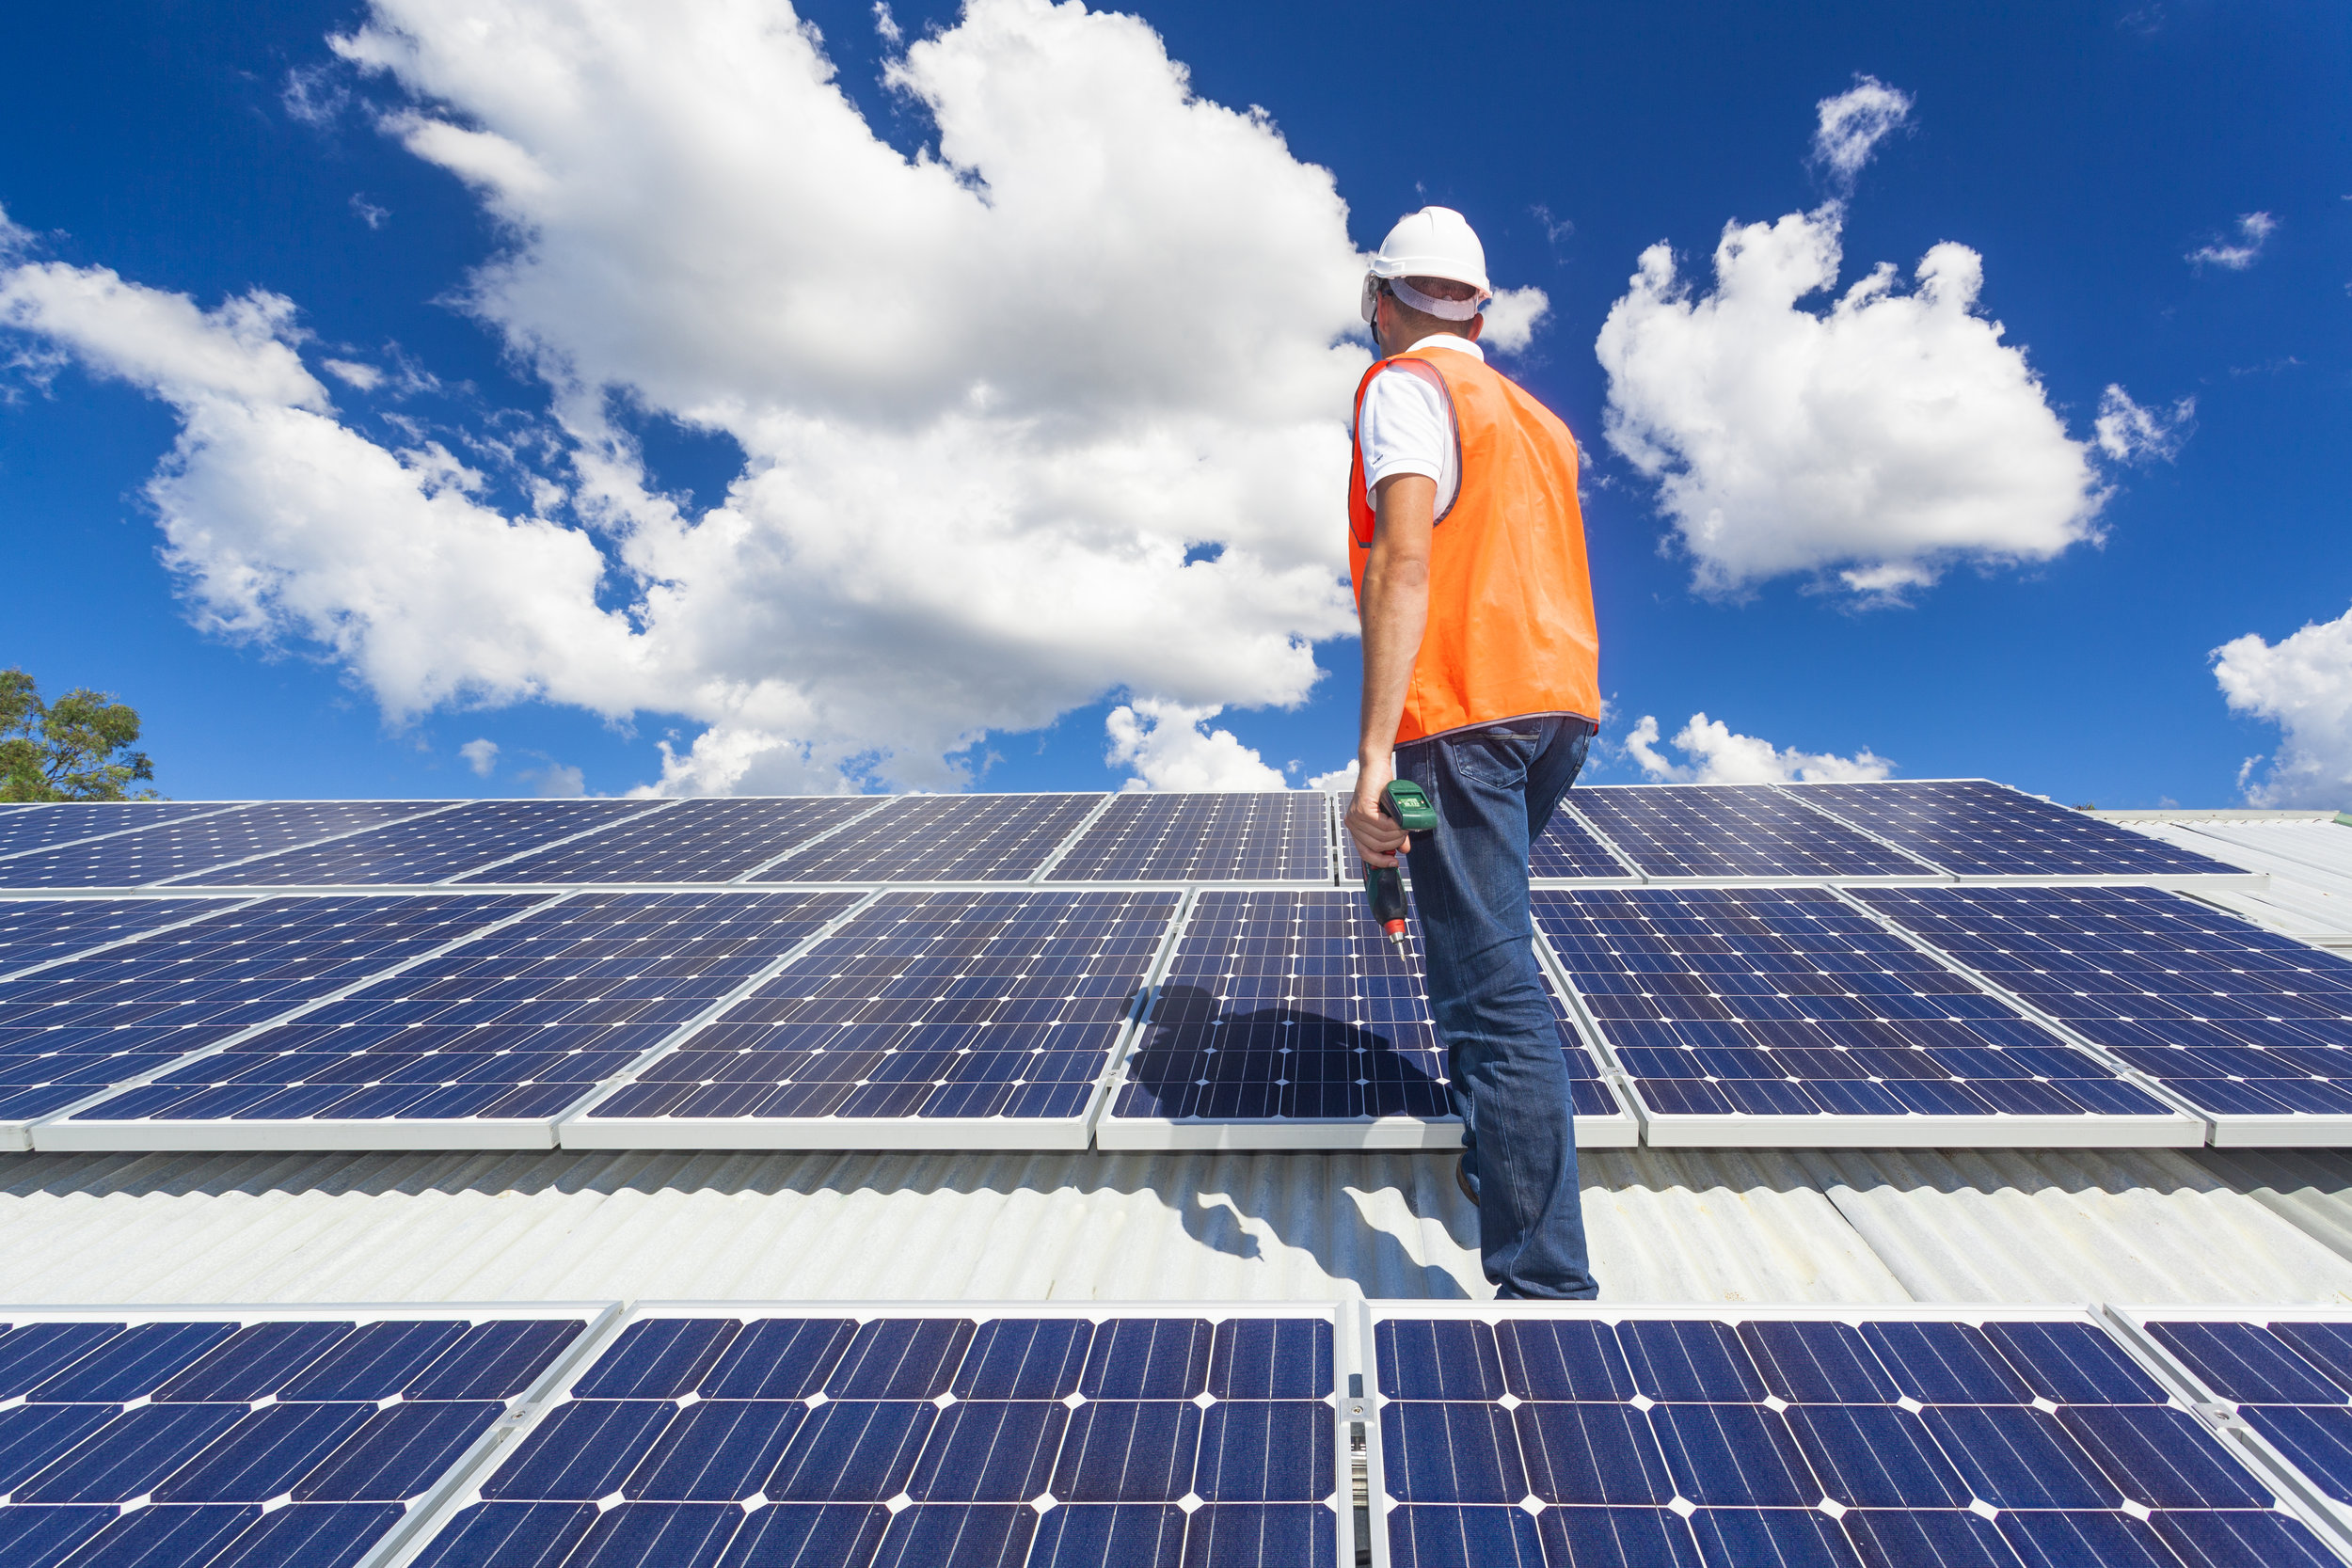 bigstock-Solar-Panels-With-Technician-69571384.jpg